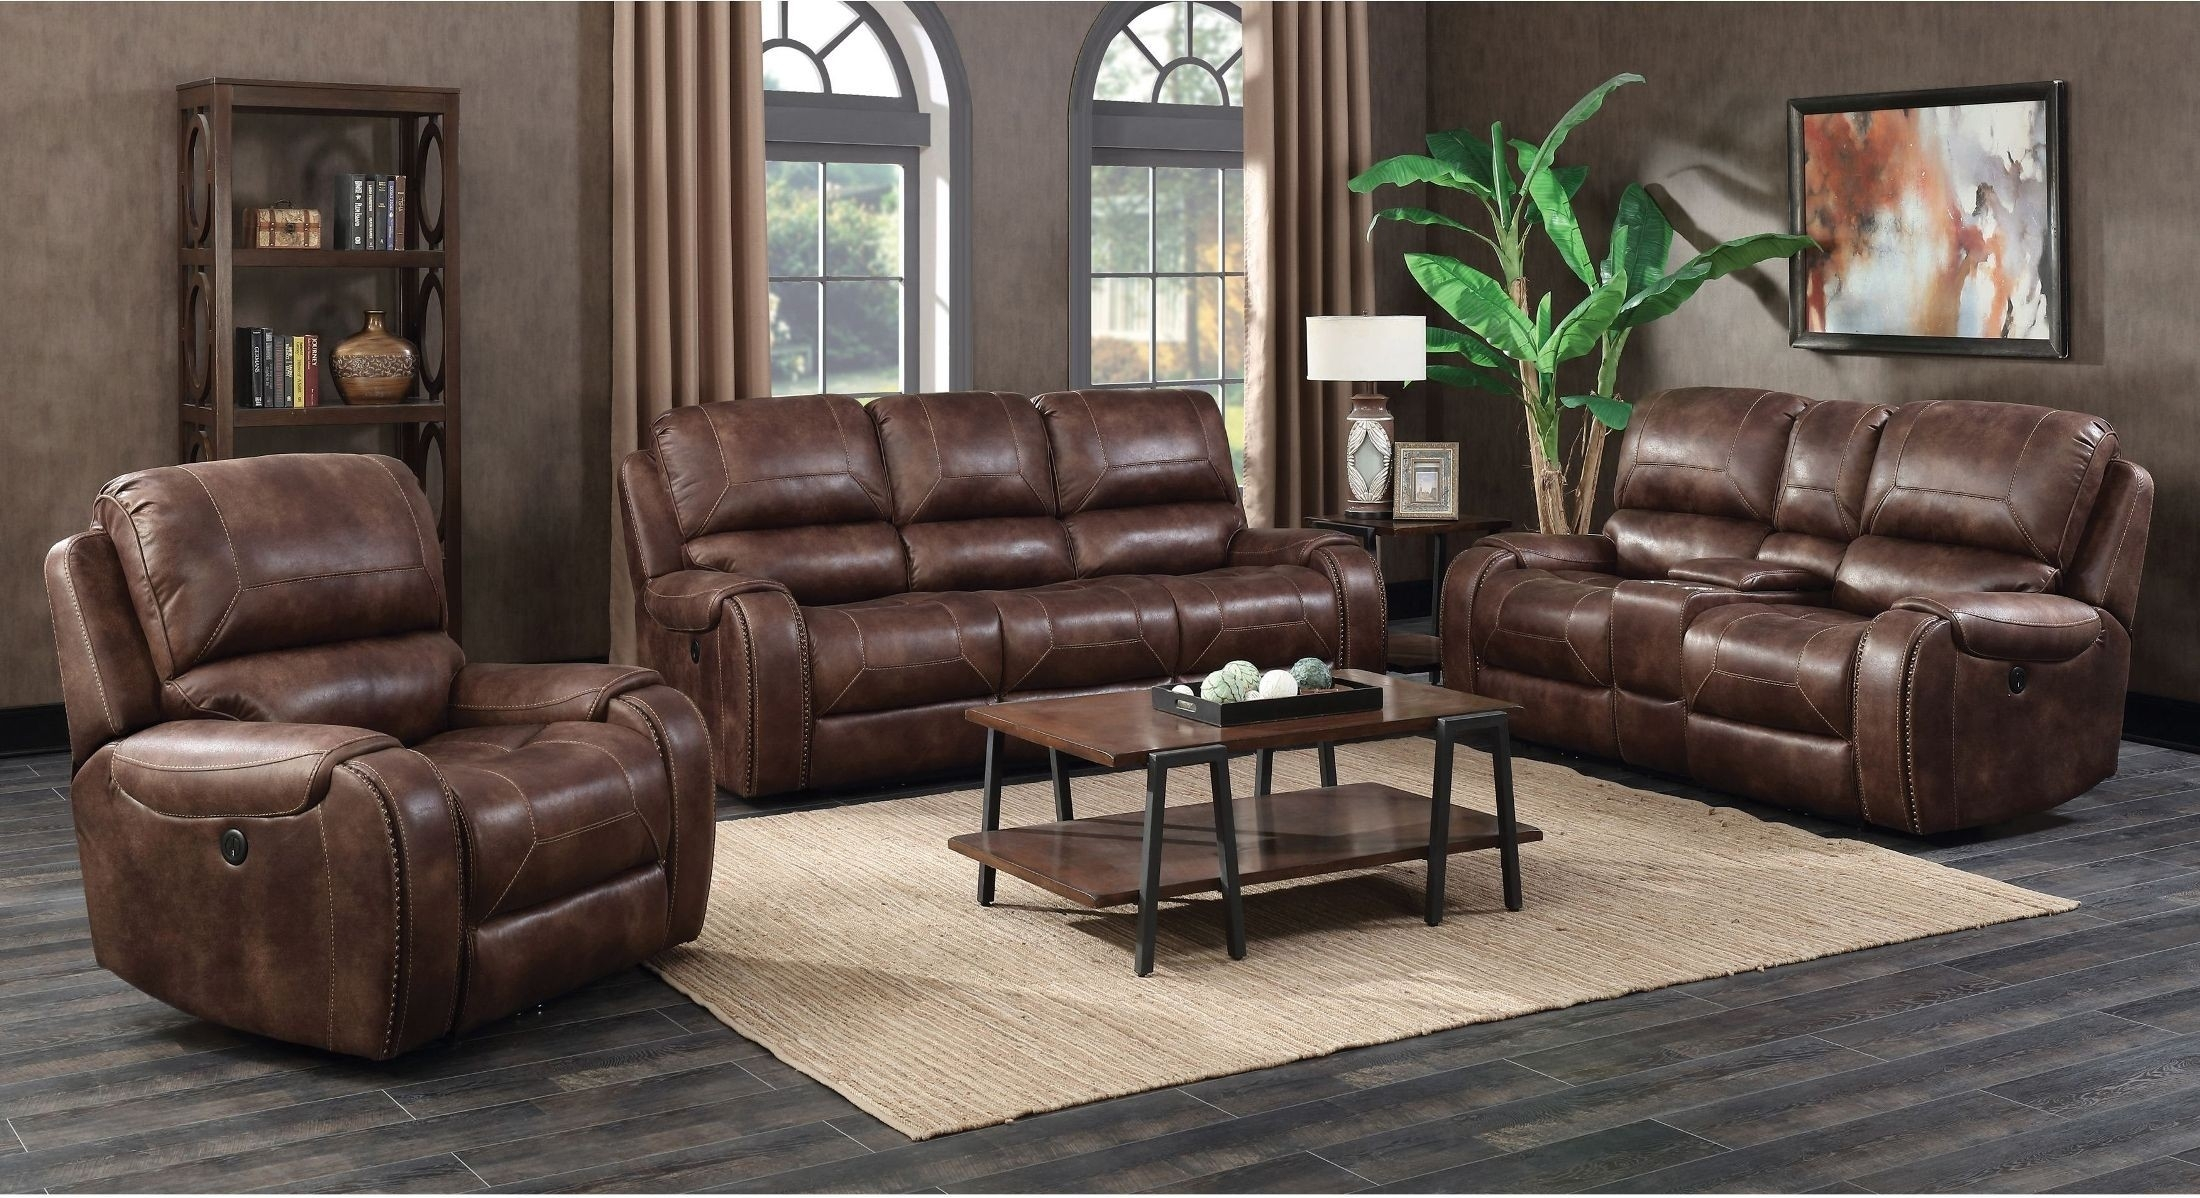 Jennings Waylon Mocha Power Reclining Living Room Set From Prime with regard to Waylon 3 Piece Power Reclining Sectionals (Image 15 of 30)